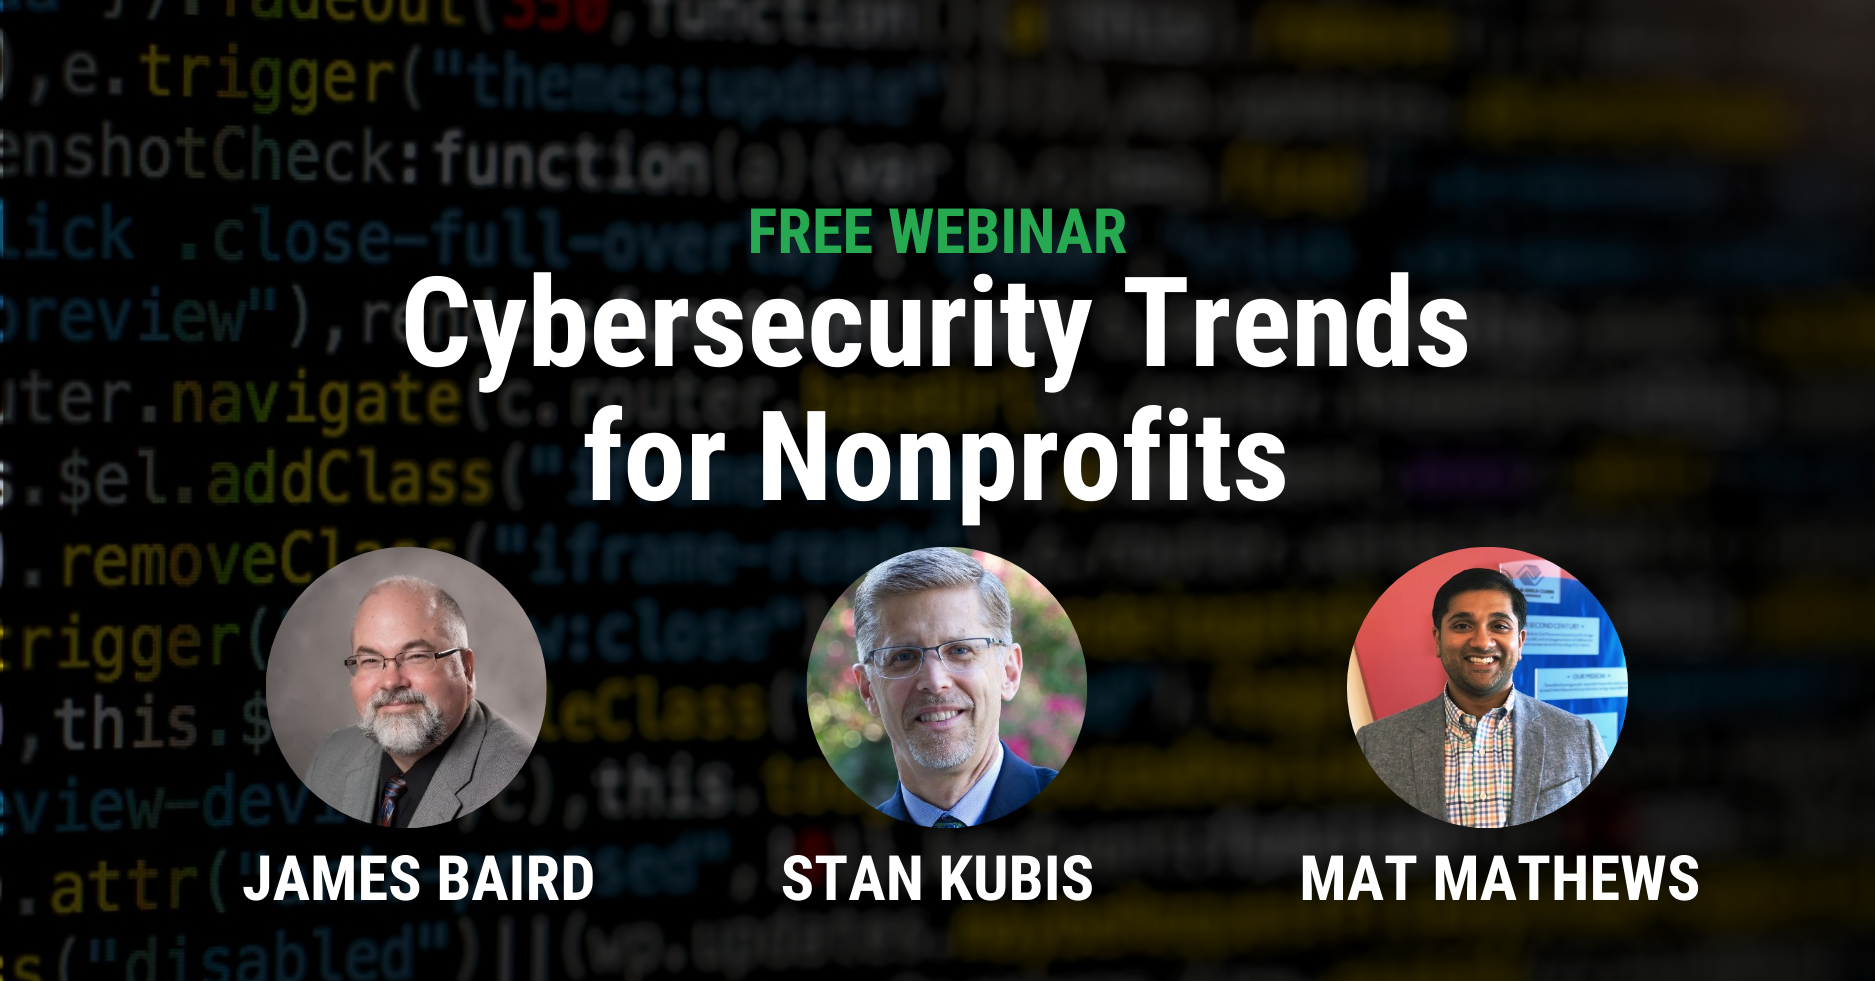 Cybersecurity Trends for Nonprofits